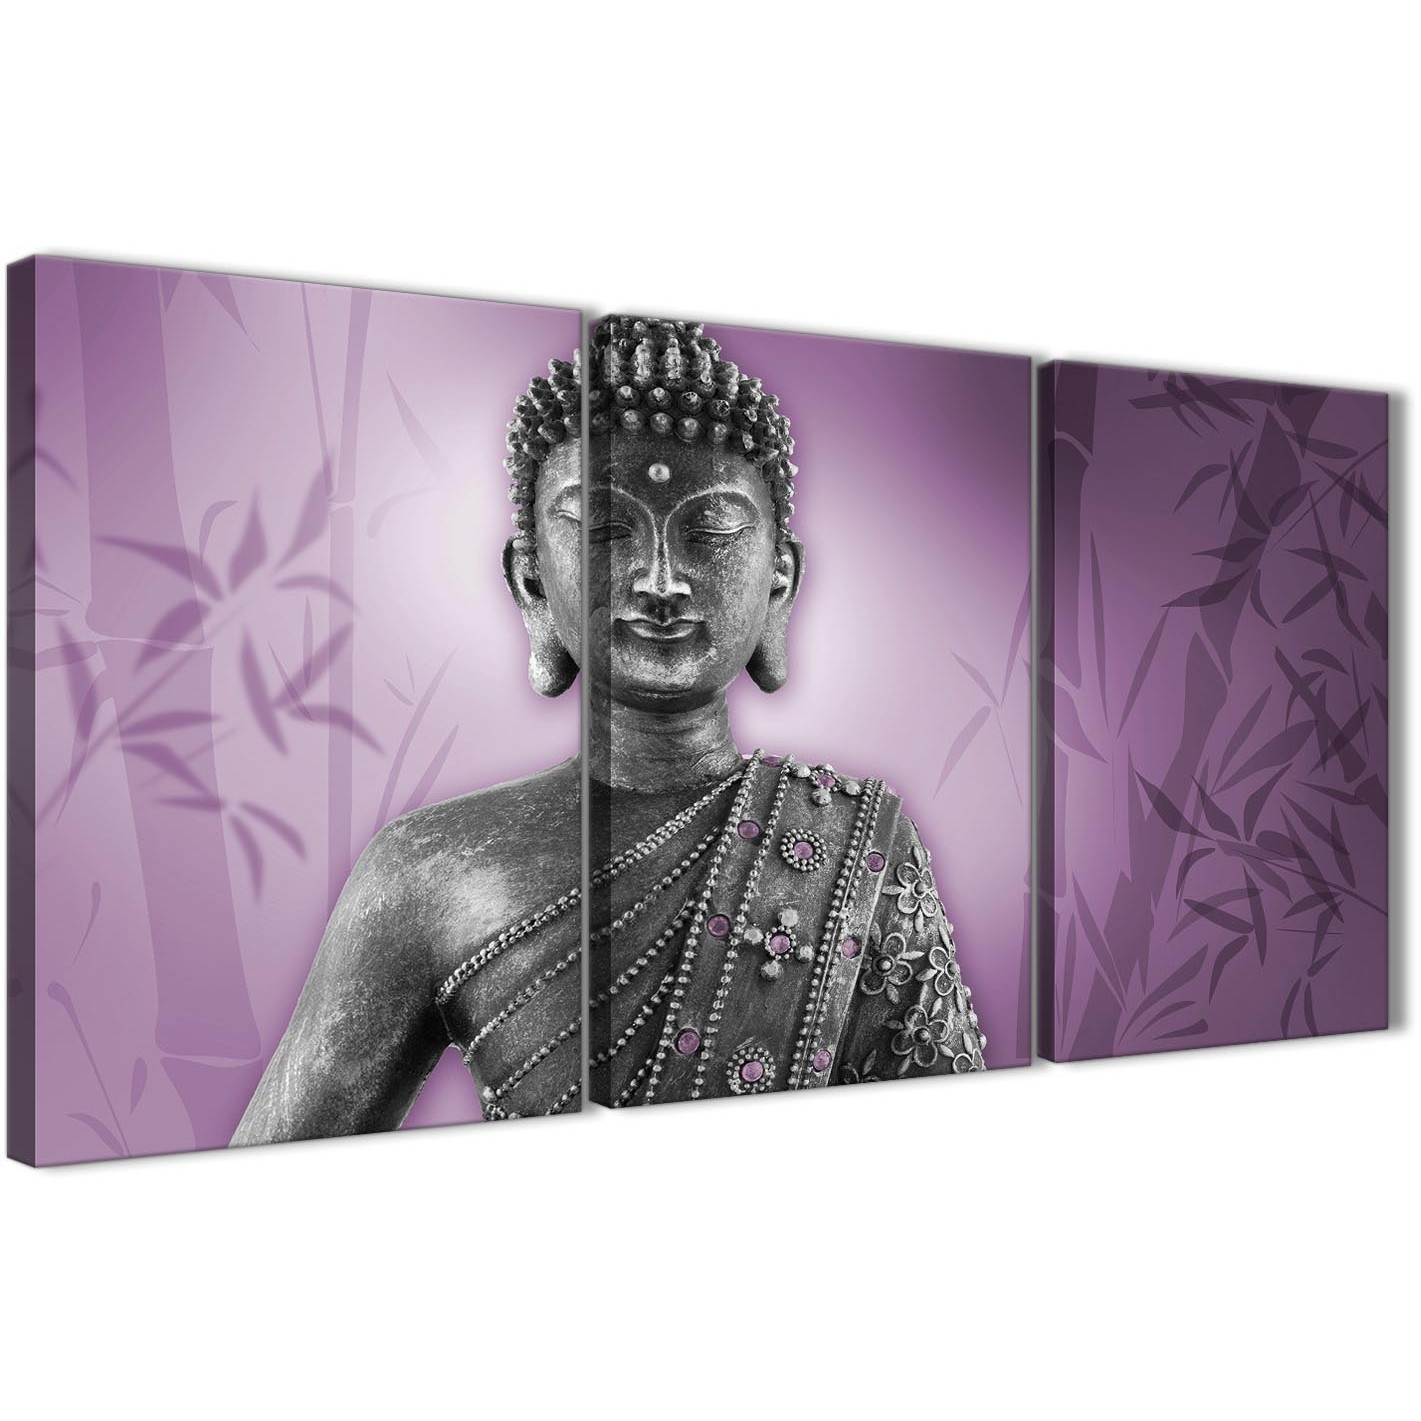 Purple And Grey Silver Canvas Art Prints Of Buddha – Multi Set Of 3 Pertaining To Most Recent Wall Art Prints (View 11 of 20)